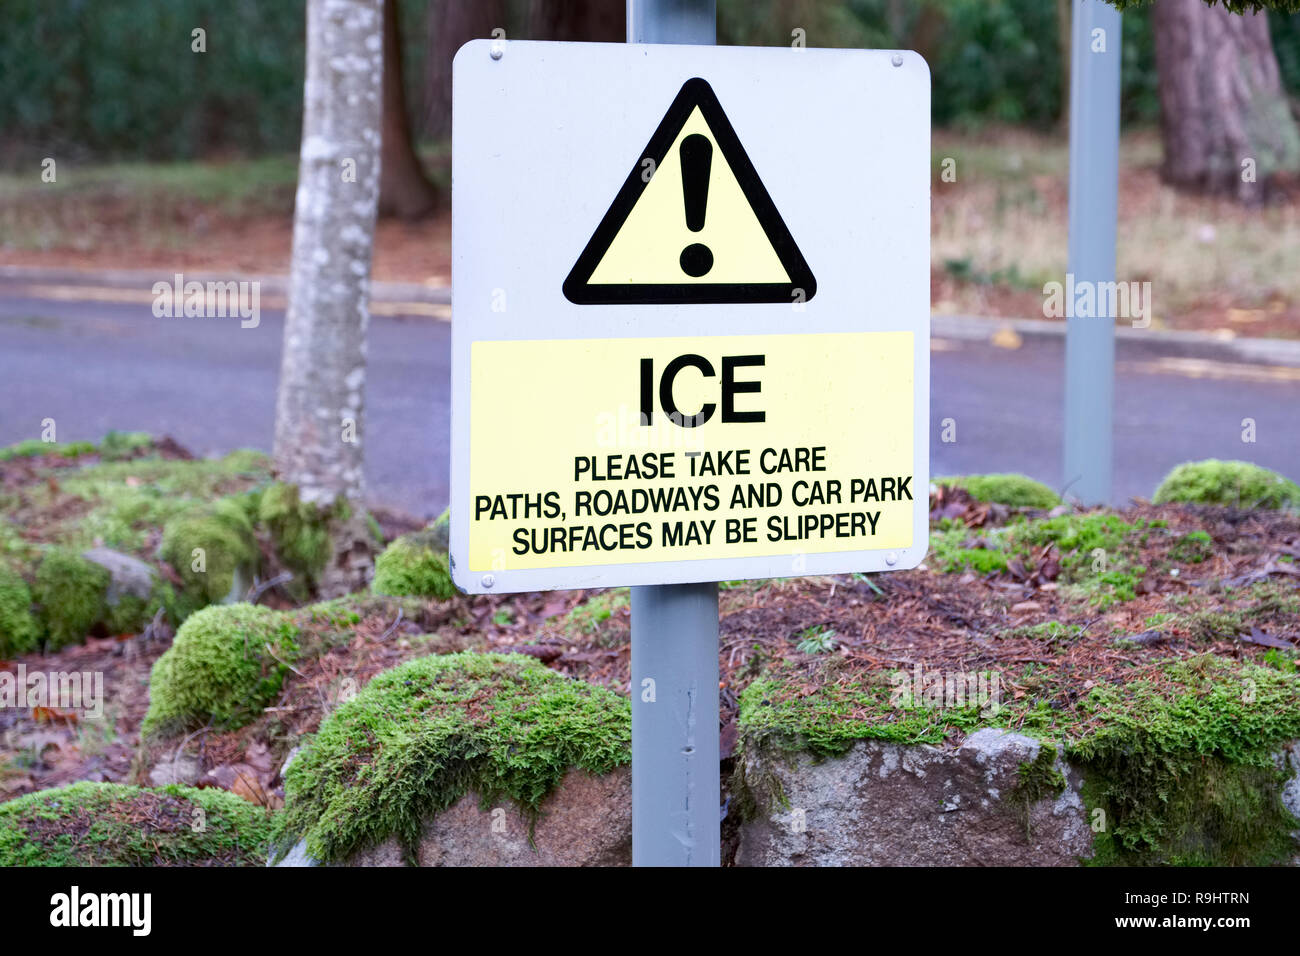 Ice winter road weather take care sign warning slippery surface - Stock Image